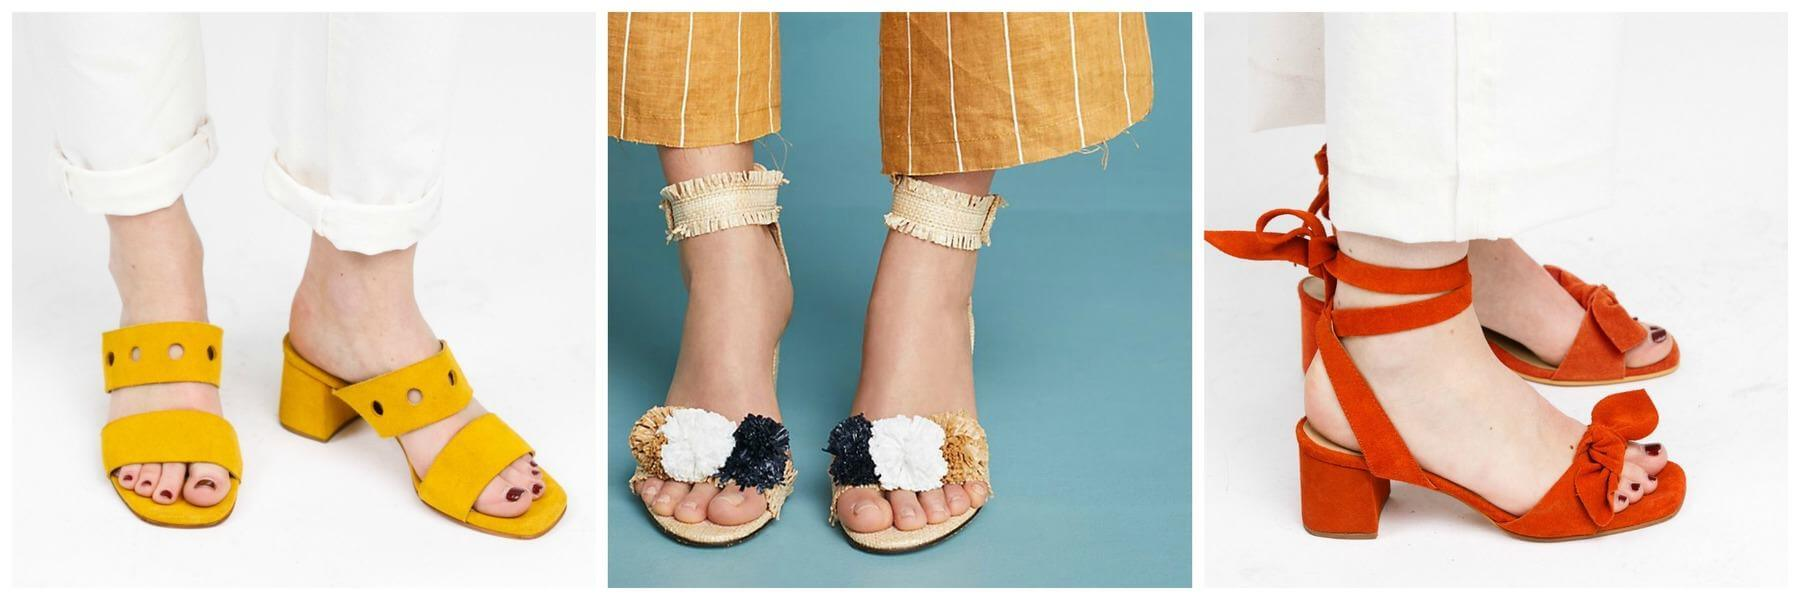 Lastly, dress up those looks and add some festive fun to your Spring Break attire with these colorful and comfortable heels. The Fashionable Block heels are $128, the Anthropologie Pom Pom heels are $148 and the Fashionable Wrap heels are $128. Image: Fashionable/Anthropologie